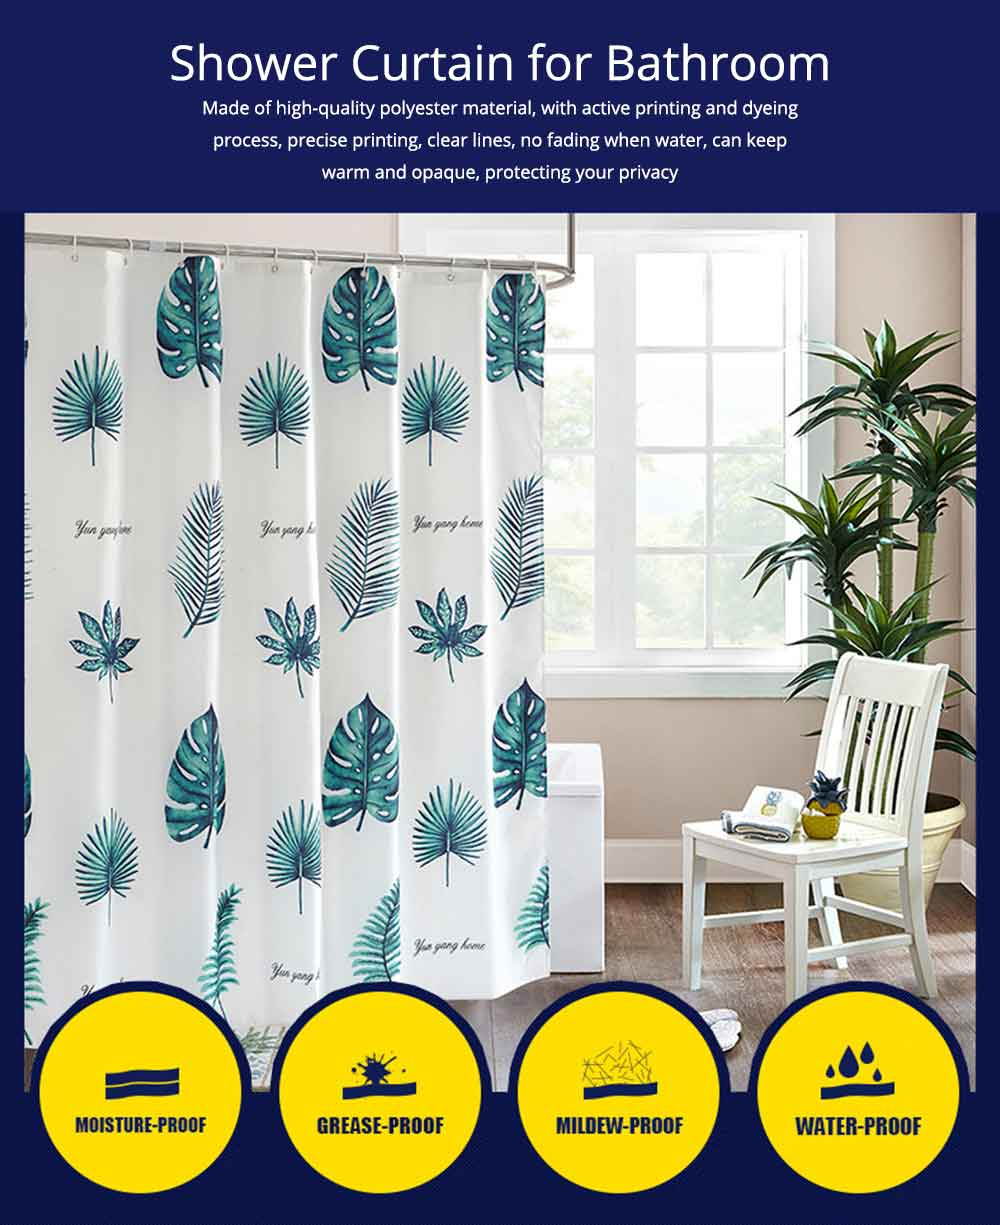 Green Leaf Shower Curtain Bathroom Shower Curtain with Sending Hooks and Increasing Plumb Bobs 0